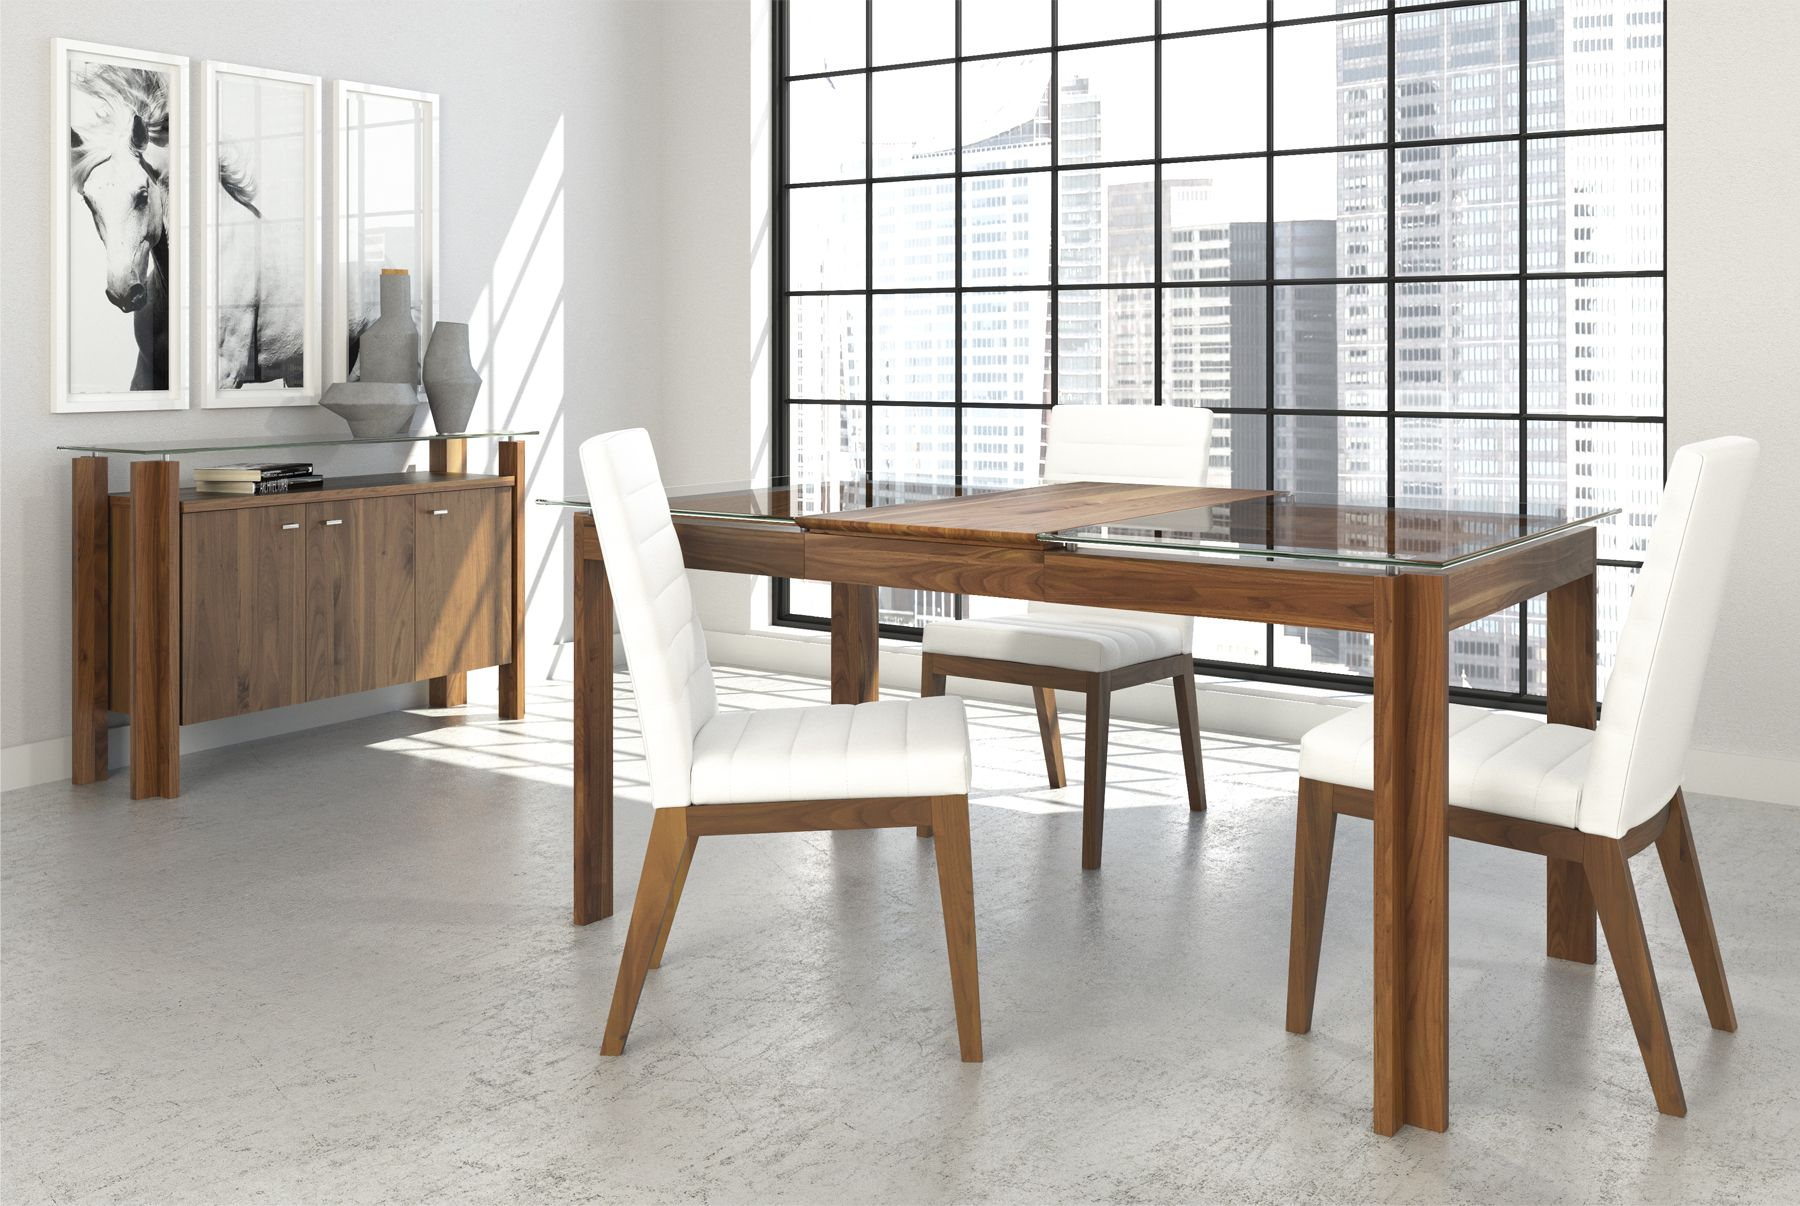 Canadian Made Dining Tables Canadian Made Dining Tables And Chairs From 100 Solid